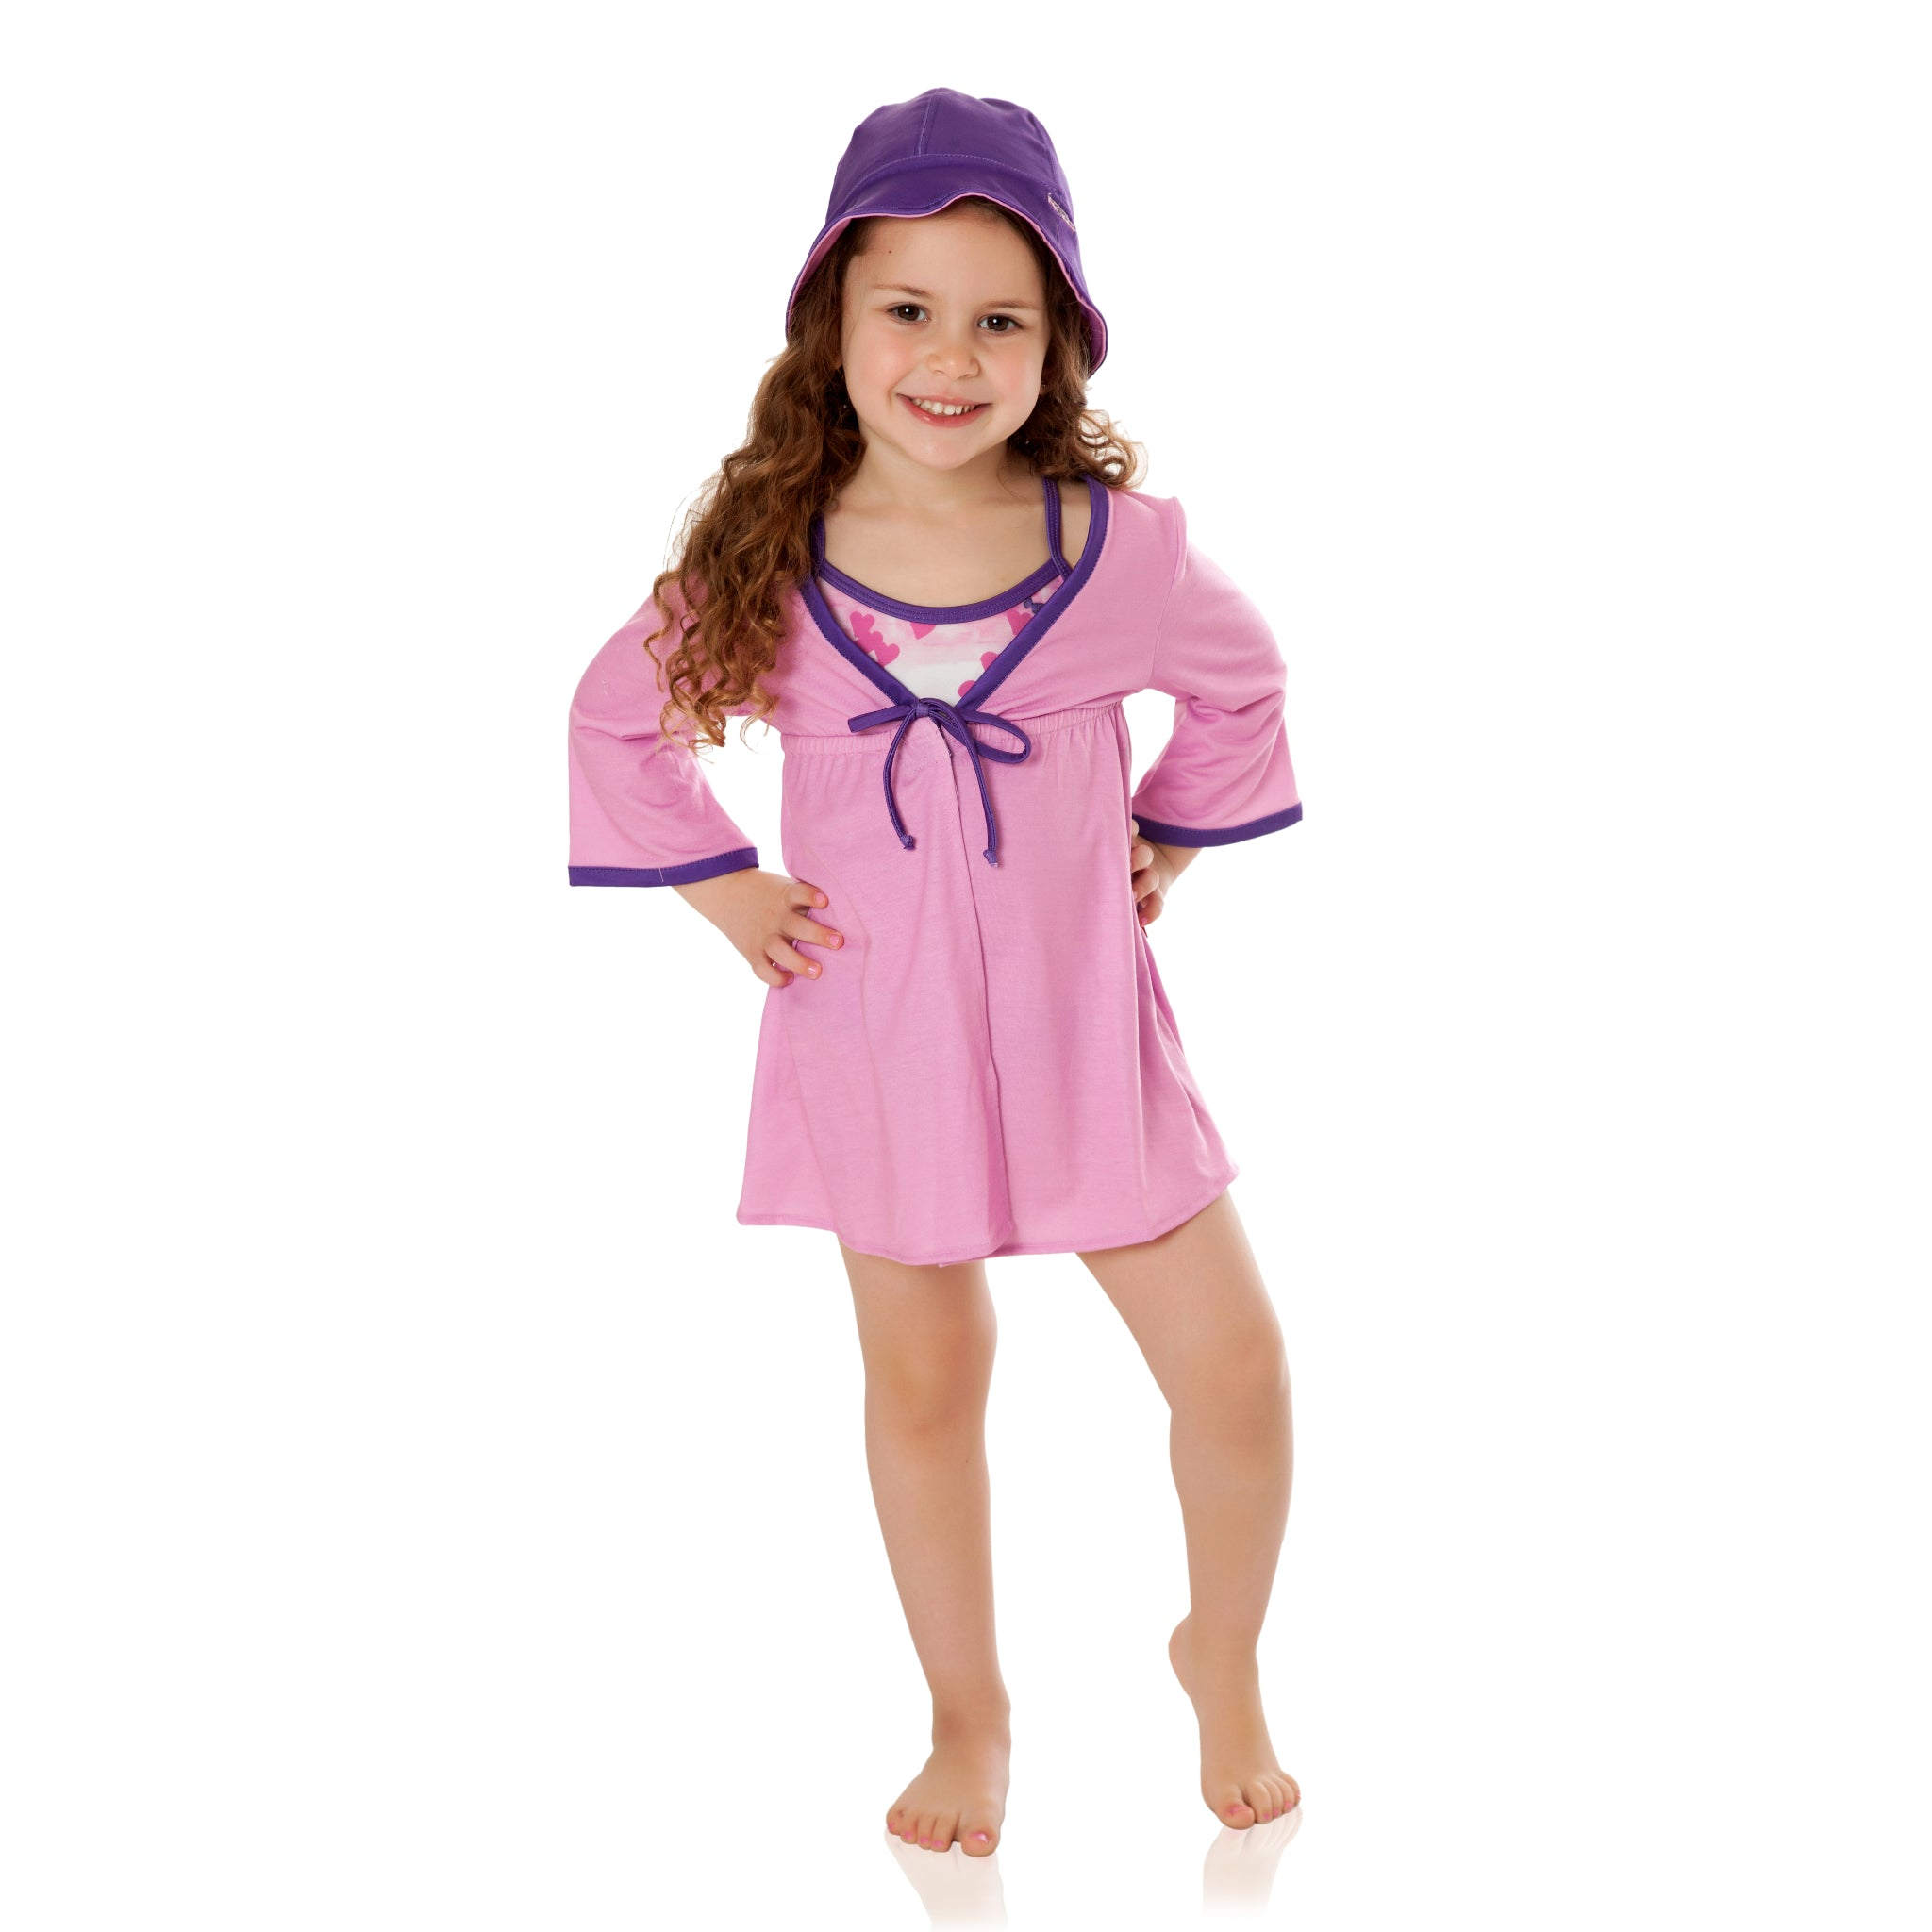 FASTEN girls cover up with UPF 50+ sun protection. Rose with Purple tie-front cover up features magnetic closure. Kids beachwear. Coordinates with FASTEN swimsuits. Toddler girl swimwear. Sizes XS-L.